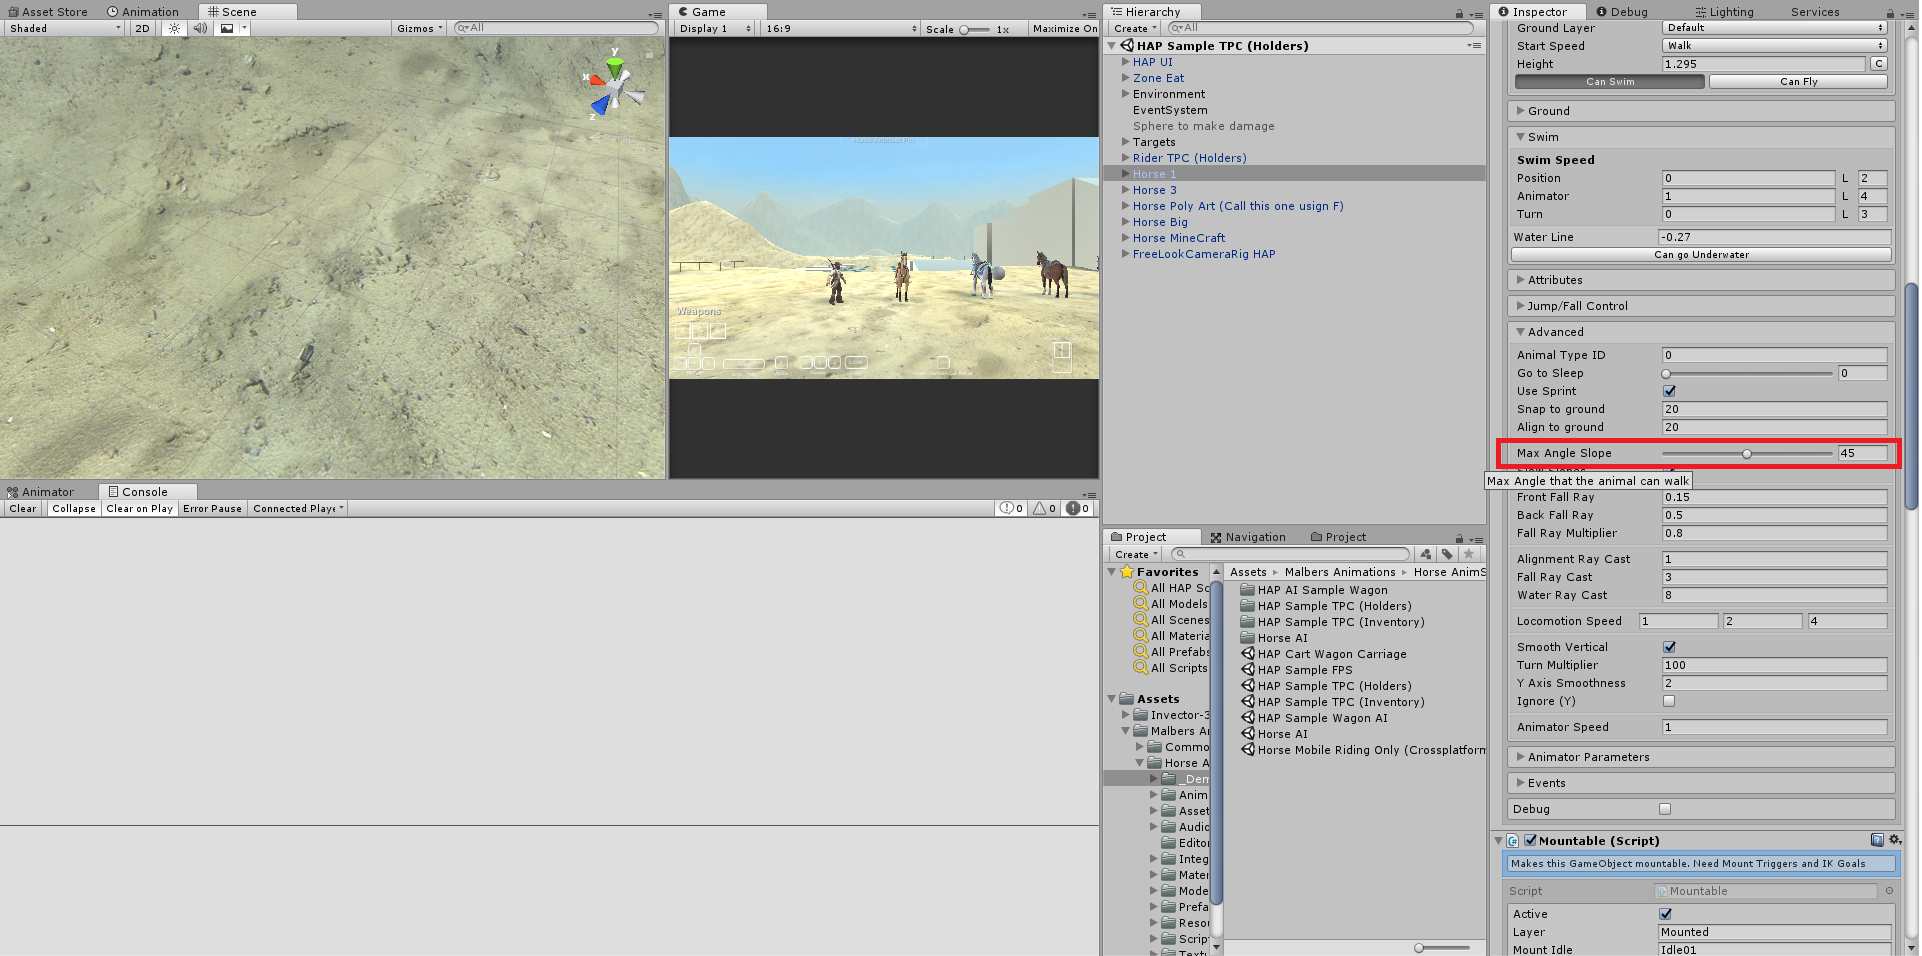 RELEASED] Horse Animset Pro 3 | Page 26 - Unity Forum